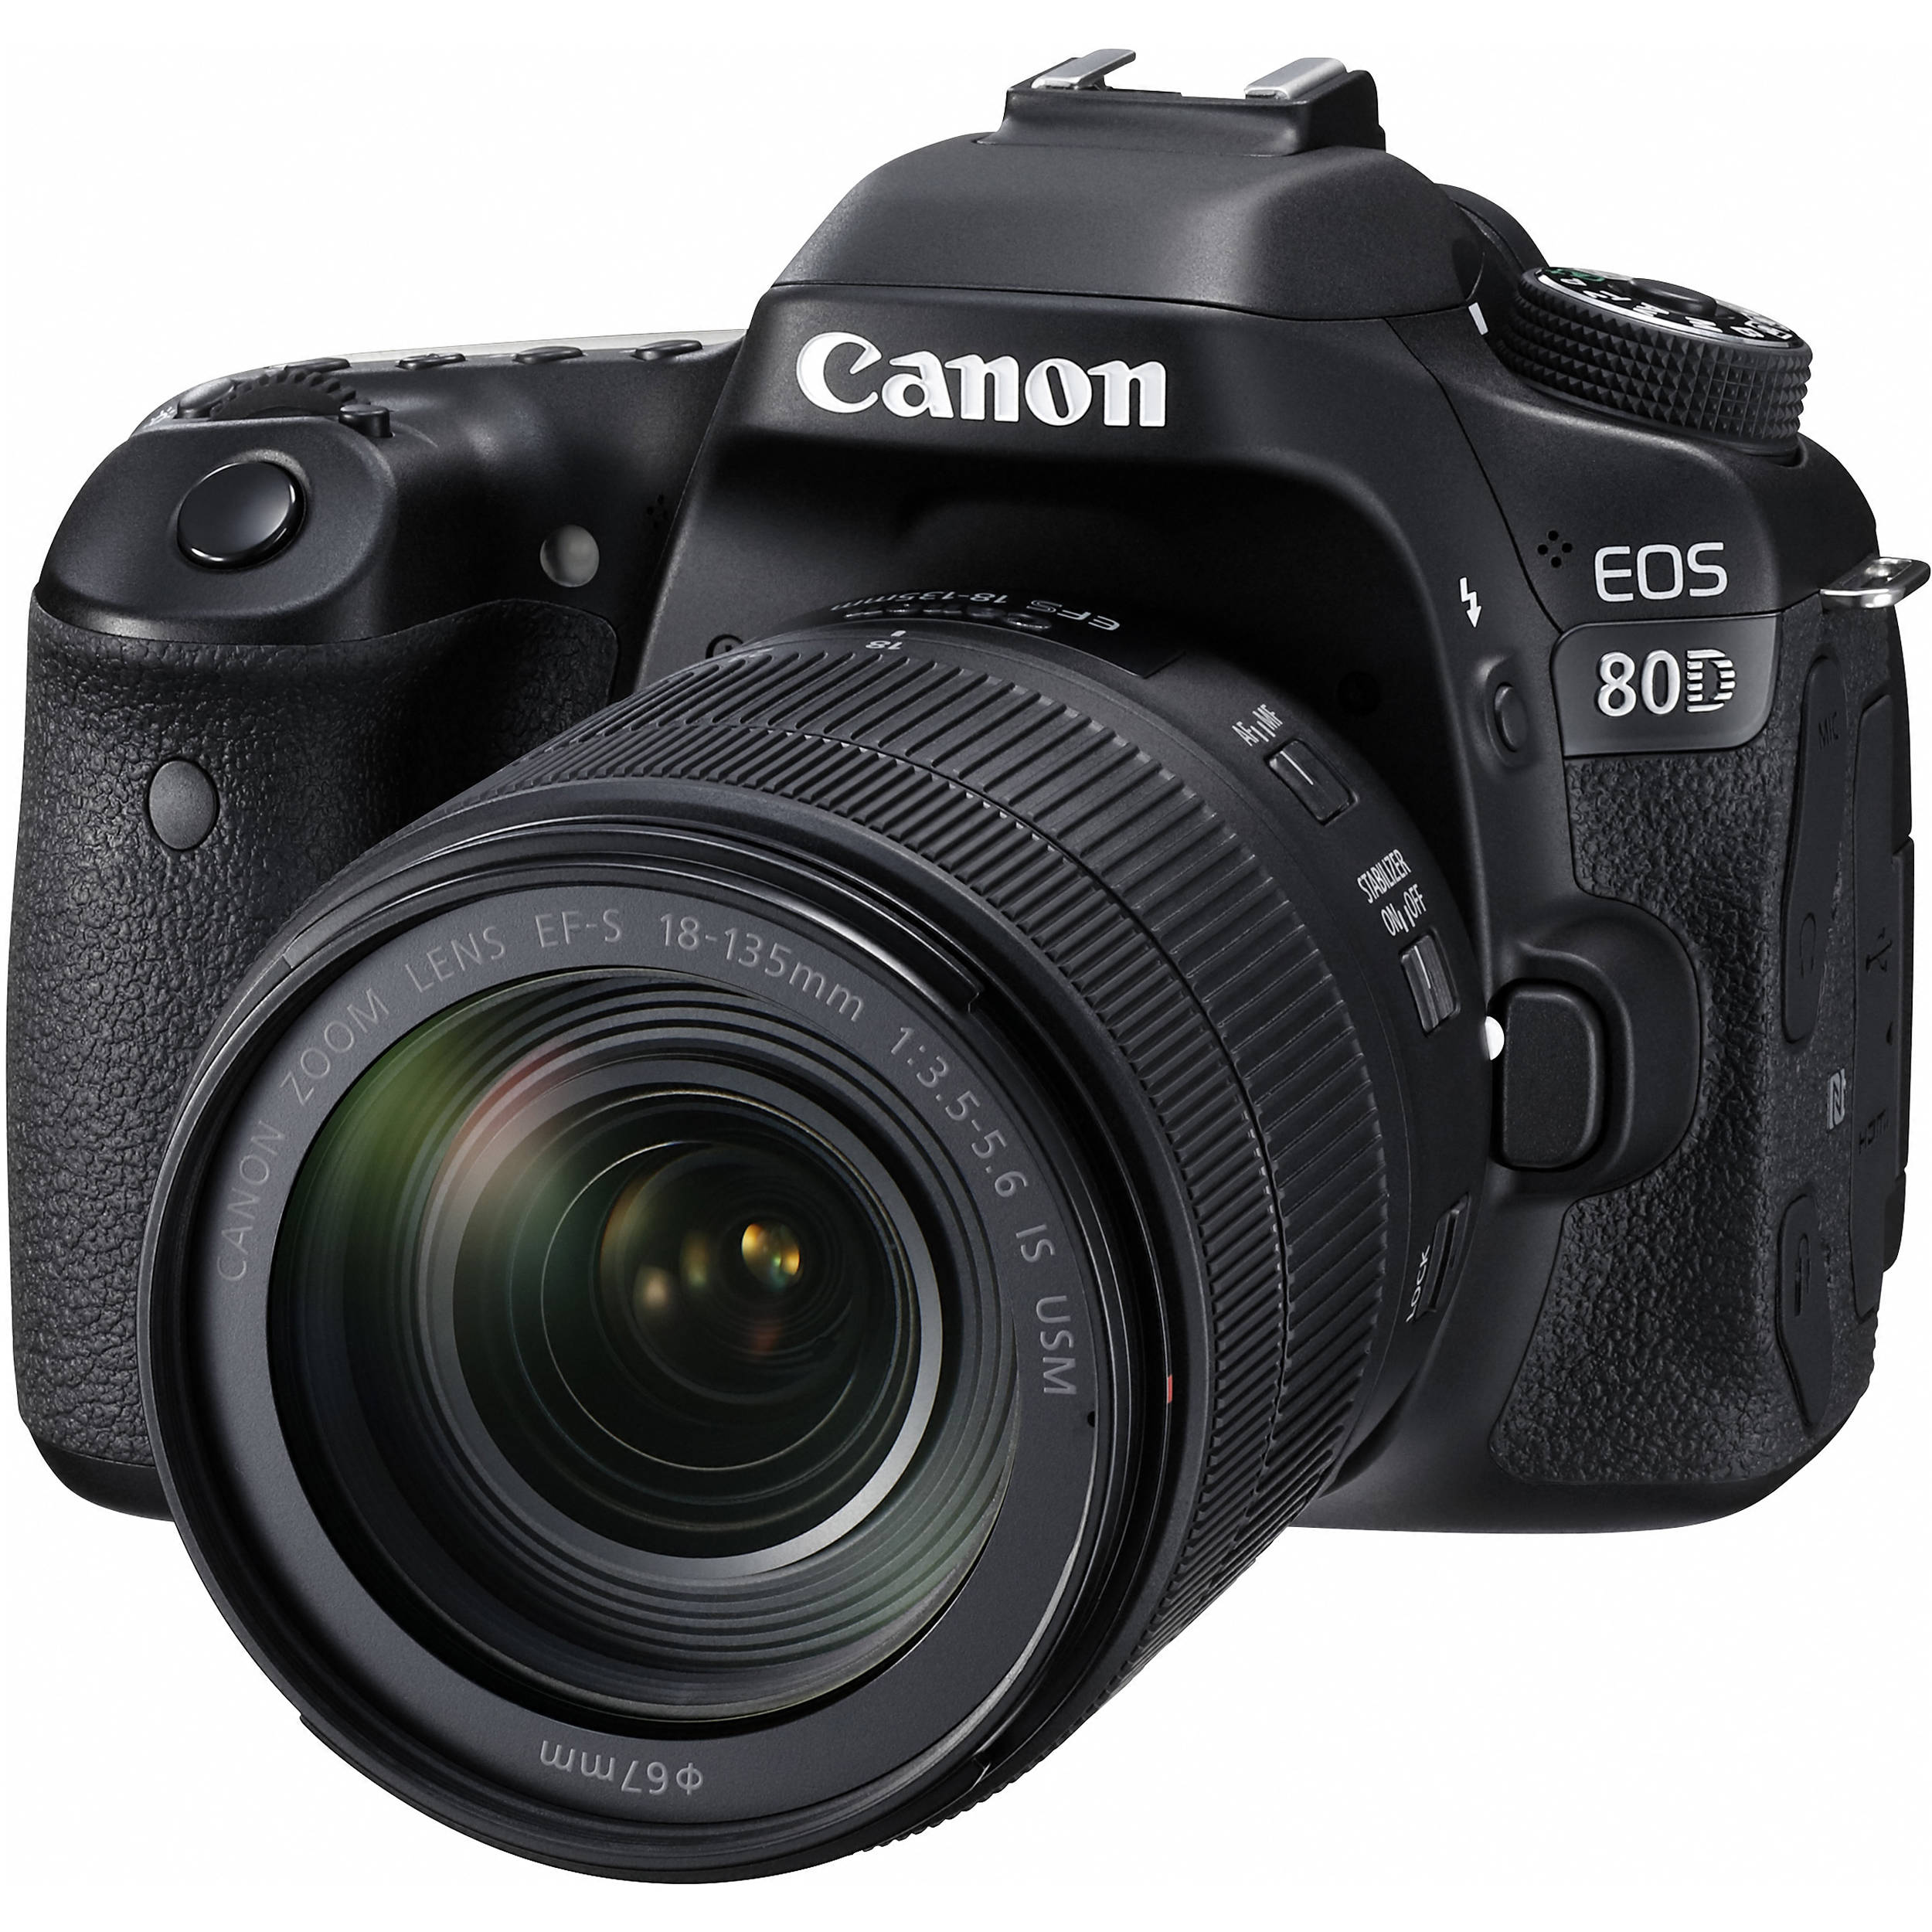 Canon EOS 80D DSLR Camera with 18-135mm Lens 1263C006 B&H Photo